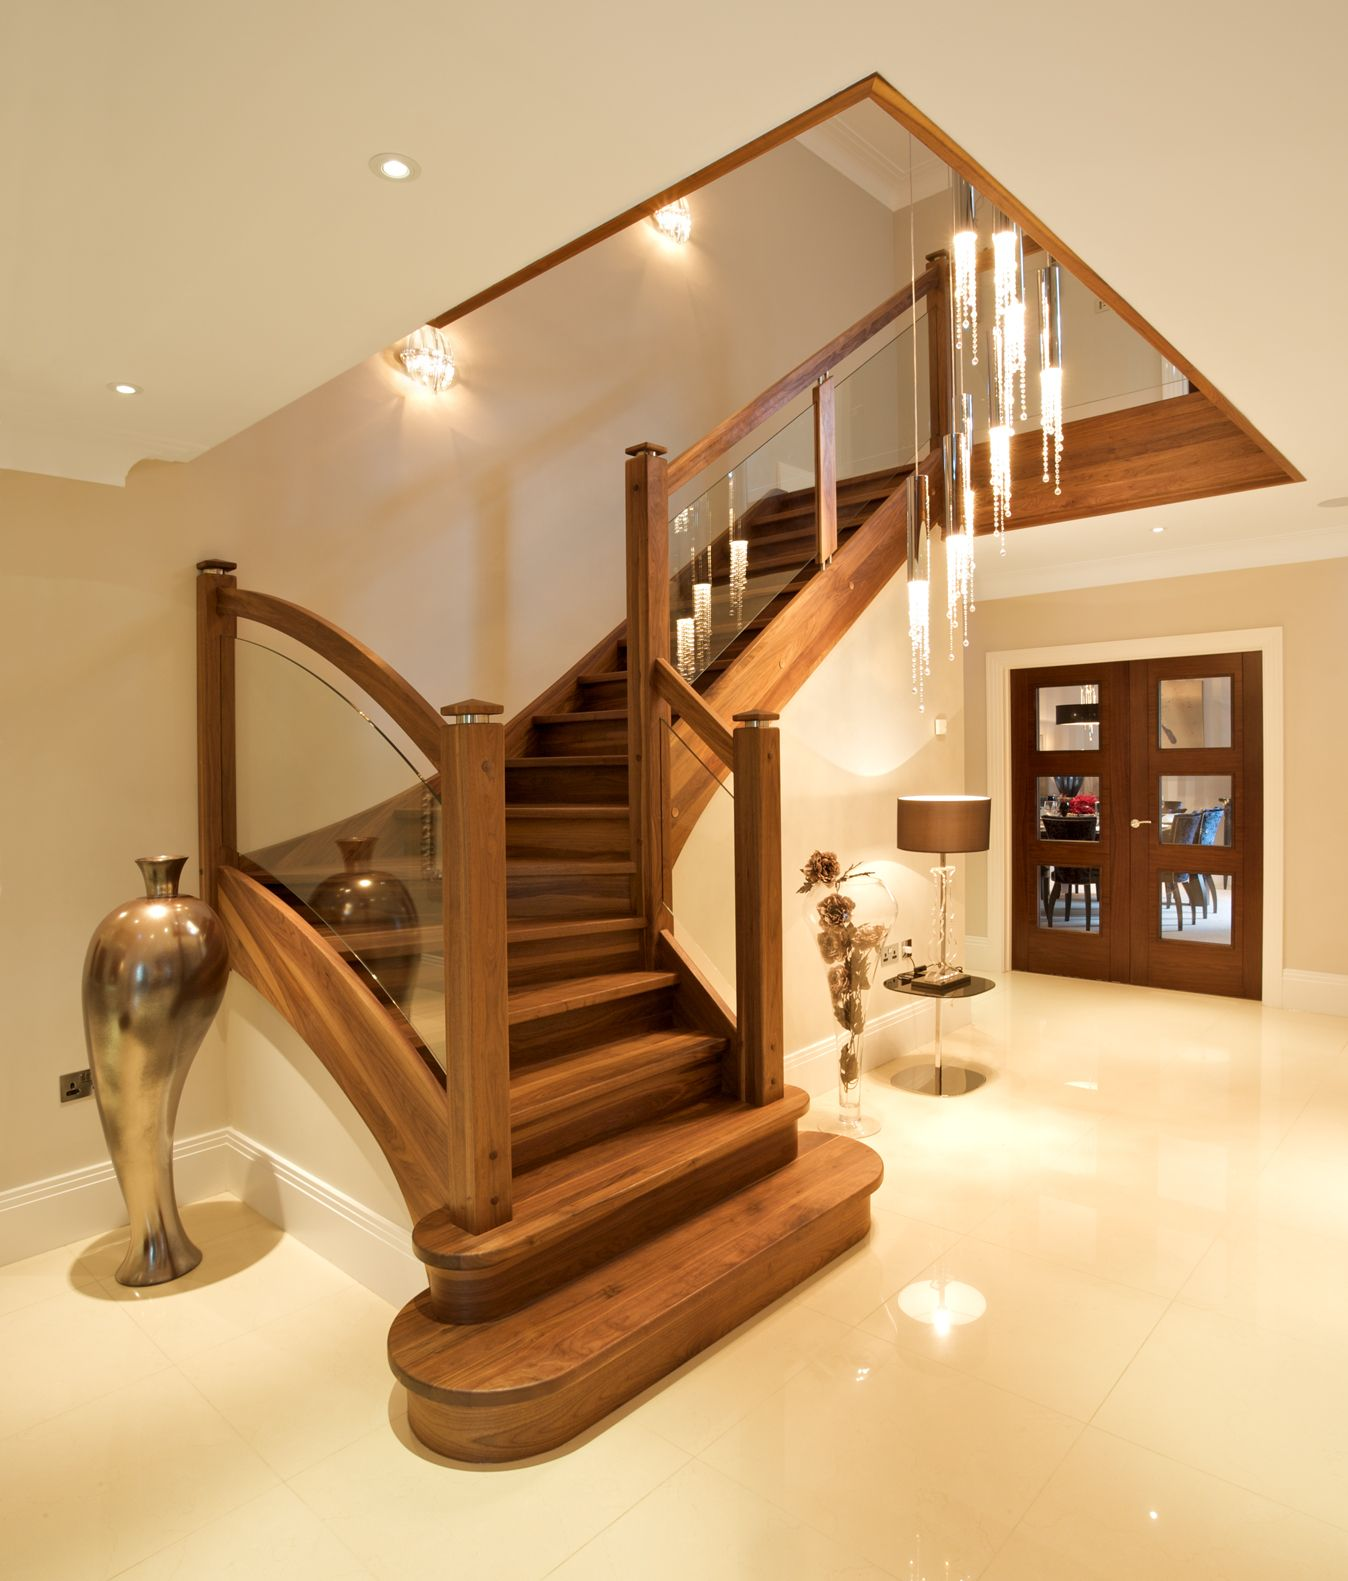 Walnut Staircase In Hallway With Walnut Doors And Porcelain Floor